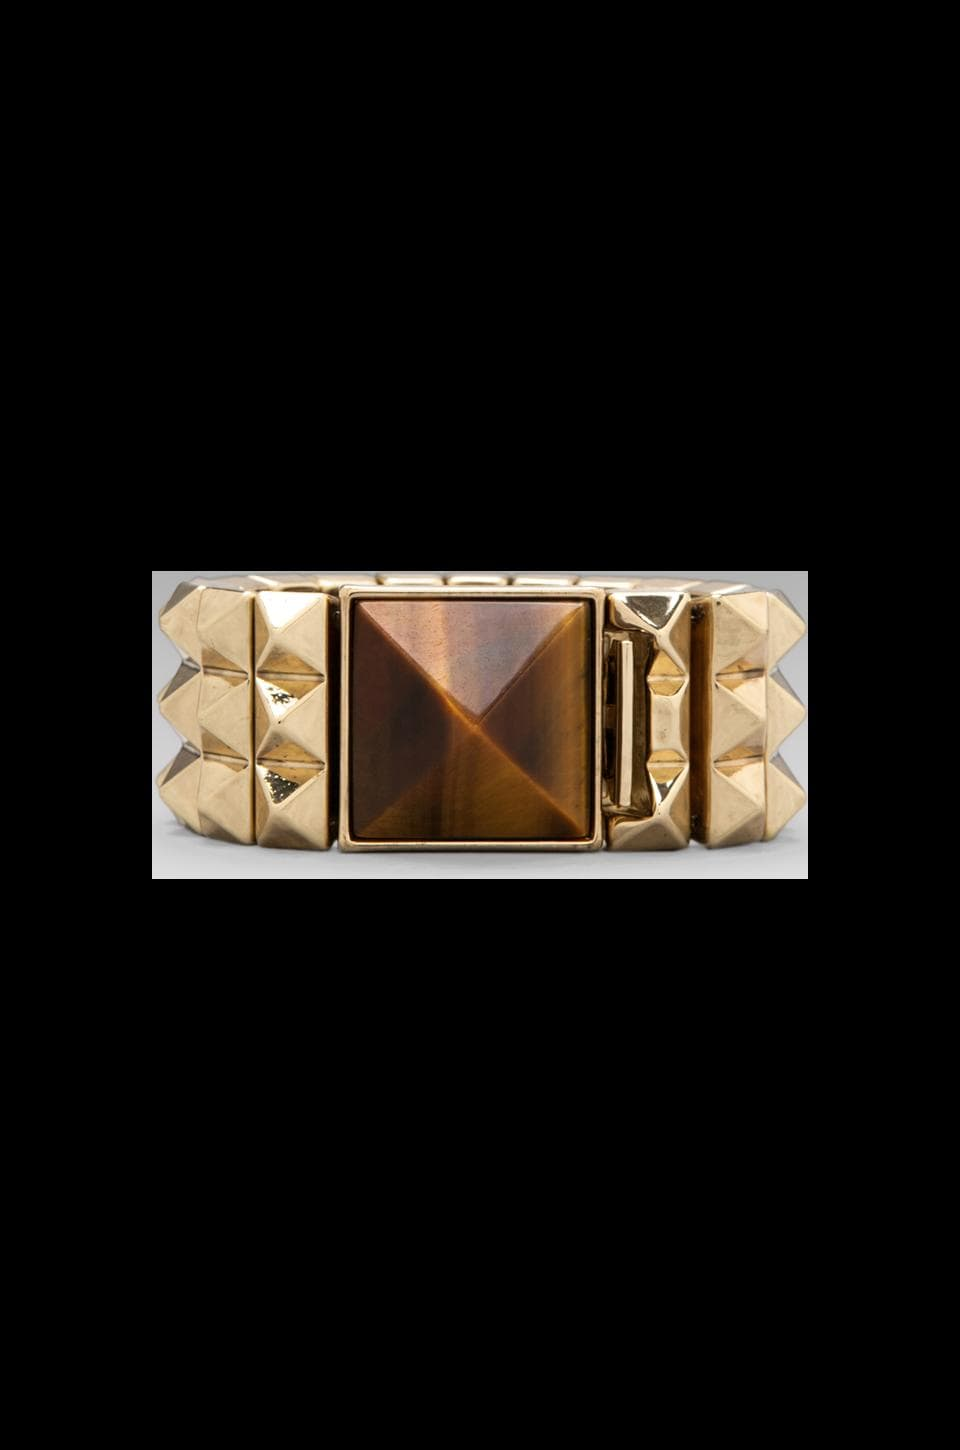 House of Harlow 1960 House of Harlow Pyramid Bracelet in Gold/Tiger's Eye